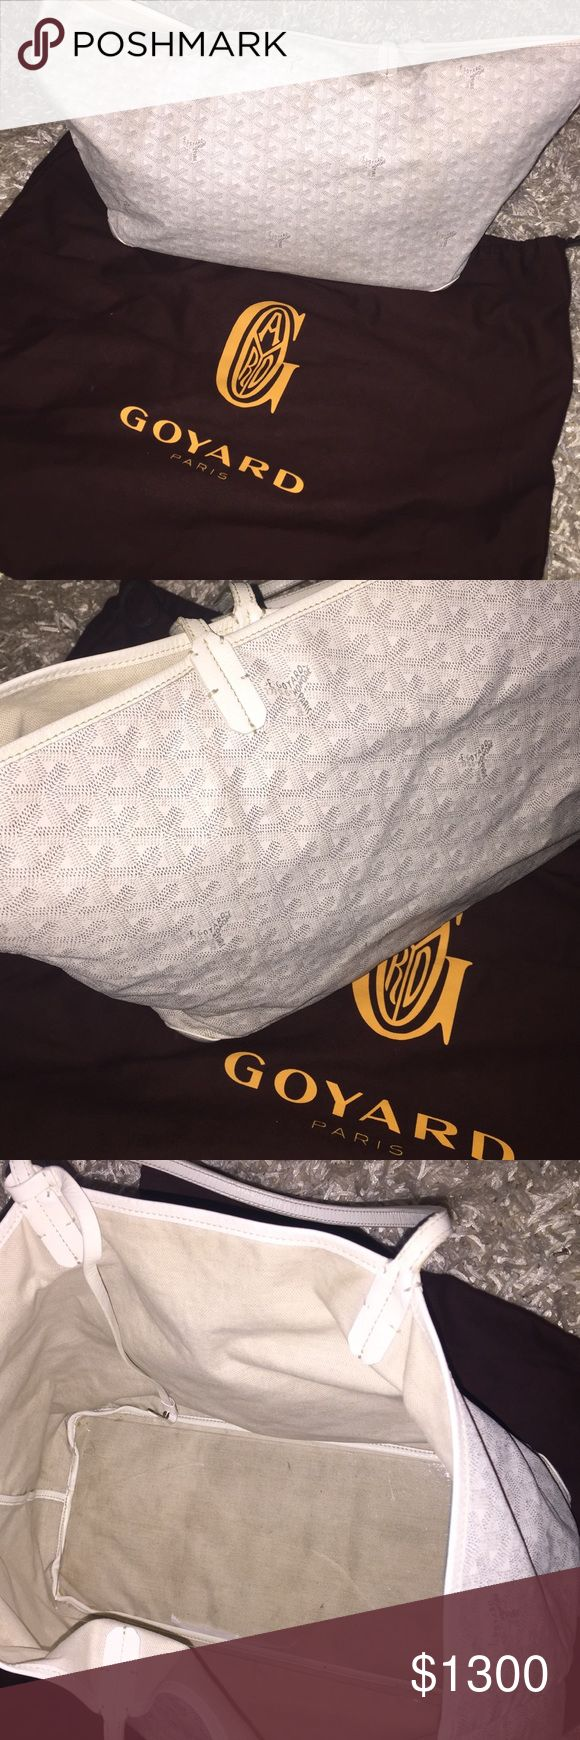 Goyard St. Louis GM tote in white Authentic GM Goyard tote originally purchased at Barneys. Used a few times but in excellent condition. There is NO pochette attached. Only the tote will come with your purchase. There is also a base shaper I'll send you with the bag 🙂 (for free). Open to selling through p a y p a l Goyard Bags Totes